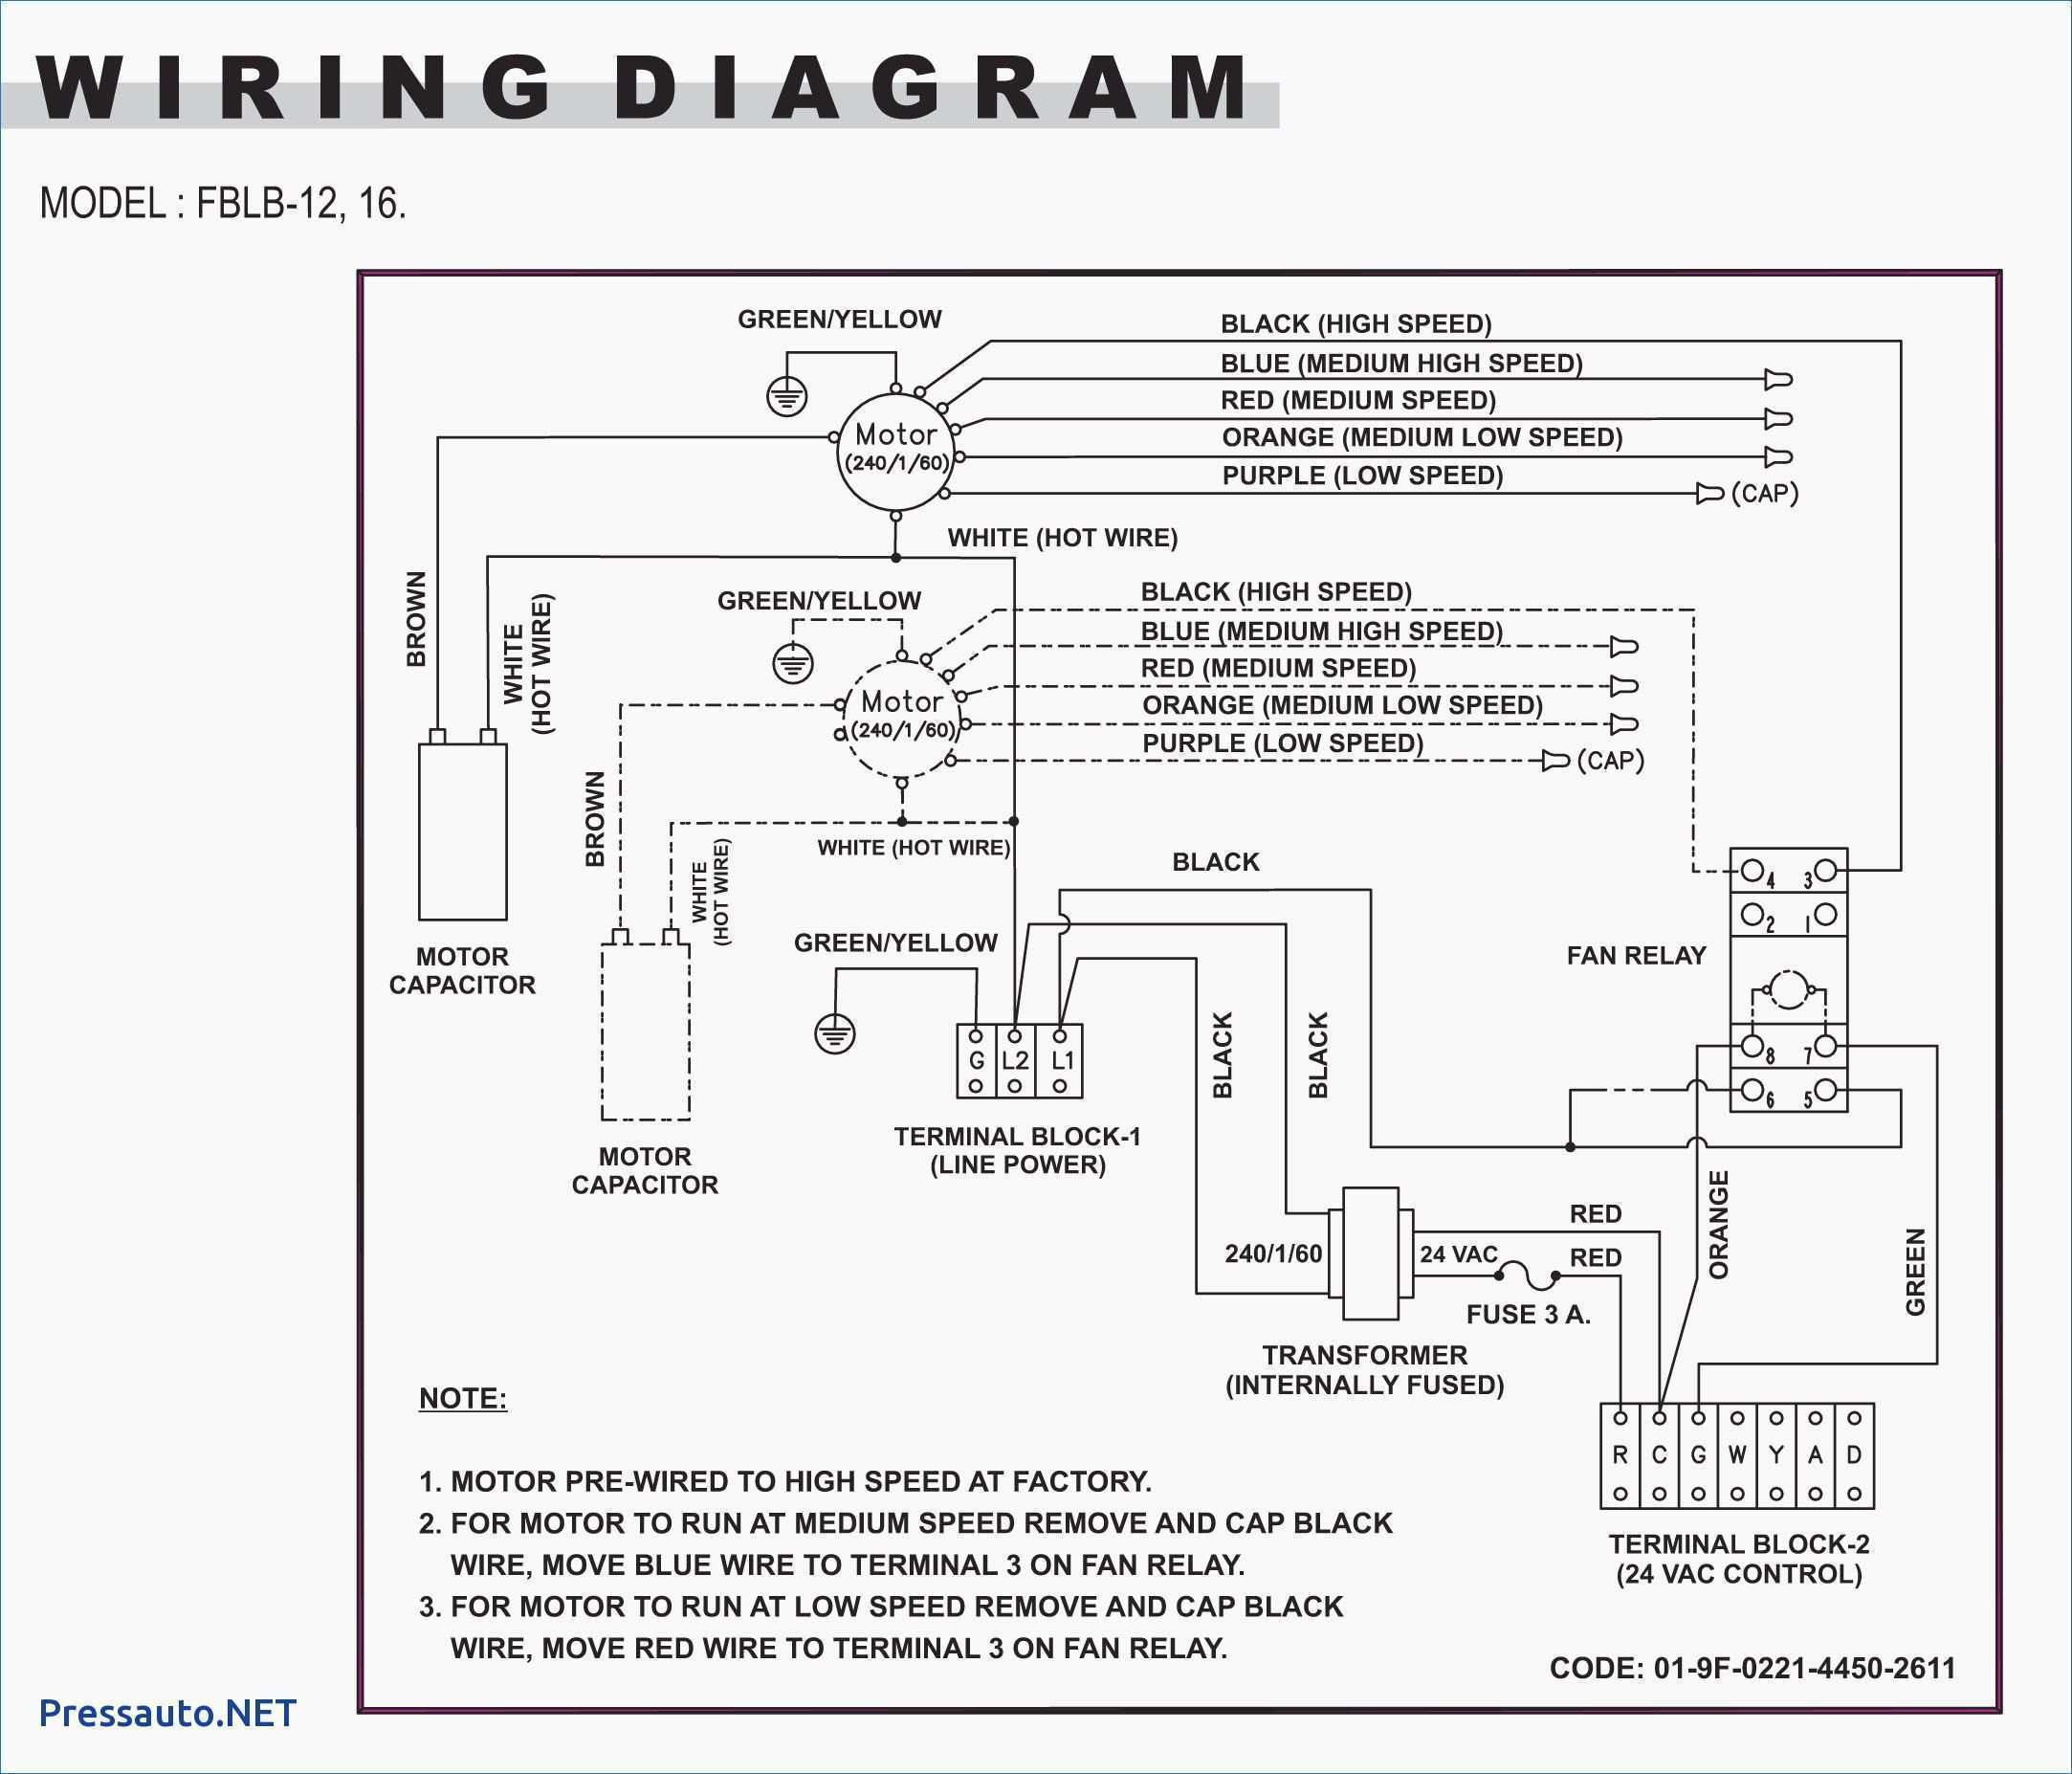 Electric Furnace Wiring Diagram 240 Volt - Auto Electrical Wiring - 240 Volt Baseboard Heater Wiring Diagram